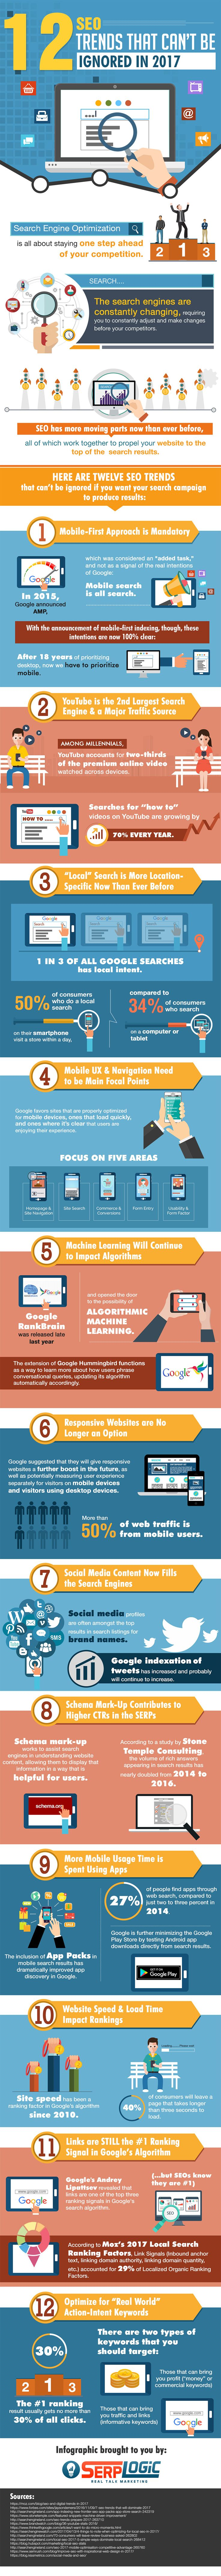 12 SEO Trends You Need to Follow for Higher Website Rankings [Infographic]